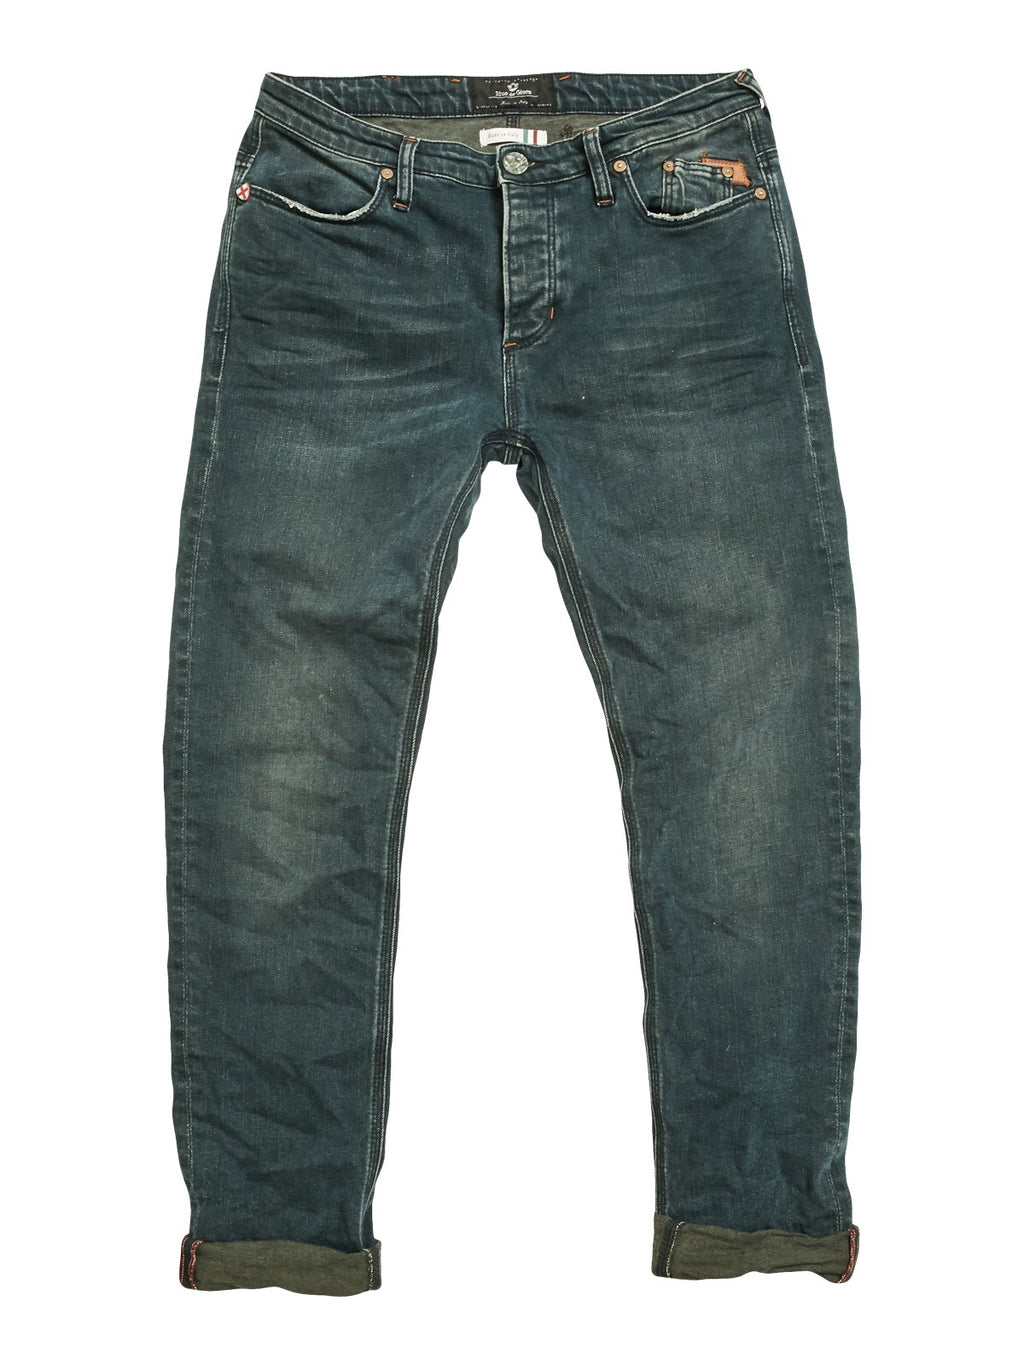 Blue de Genes Repi Reale Medium Jeans